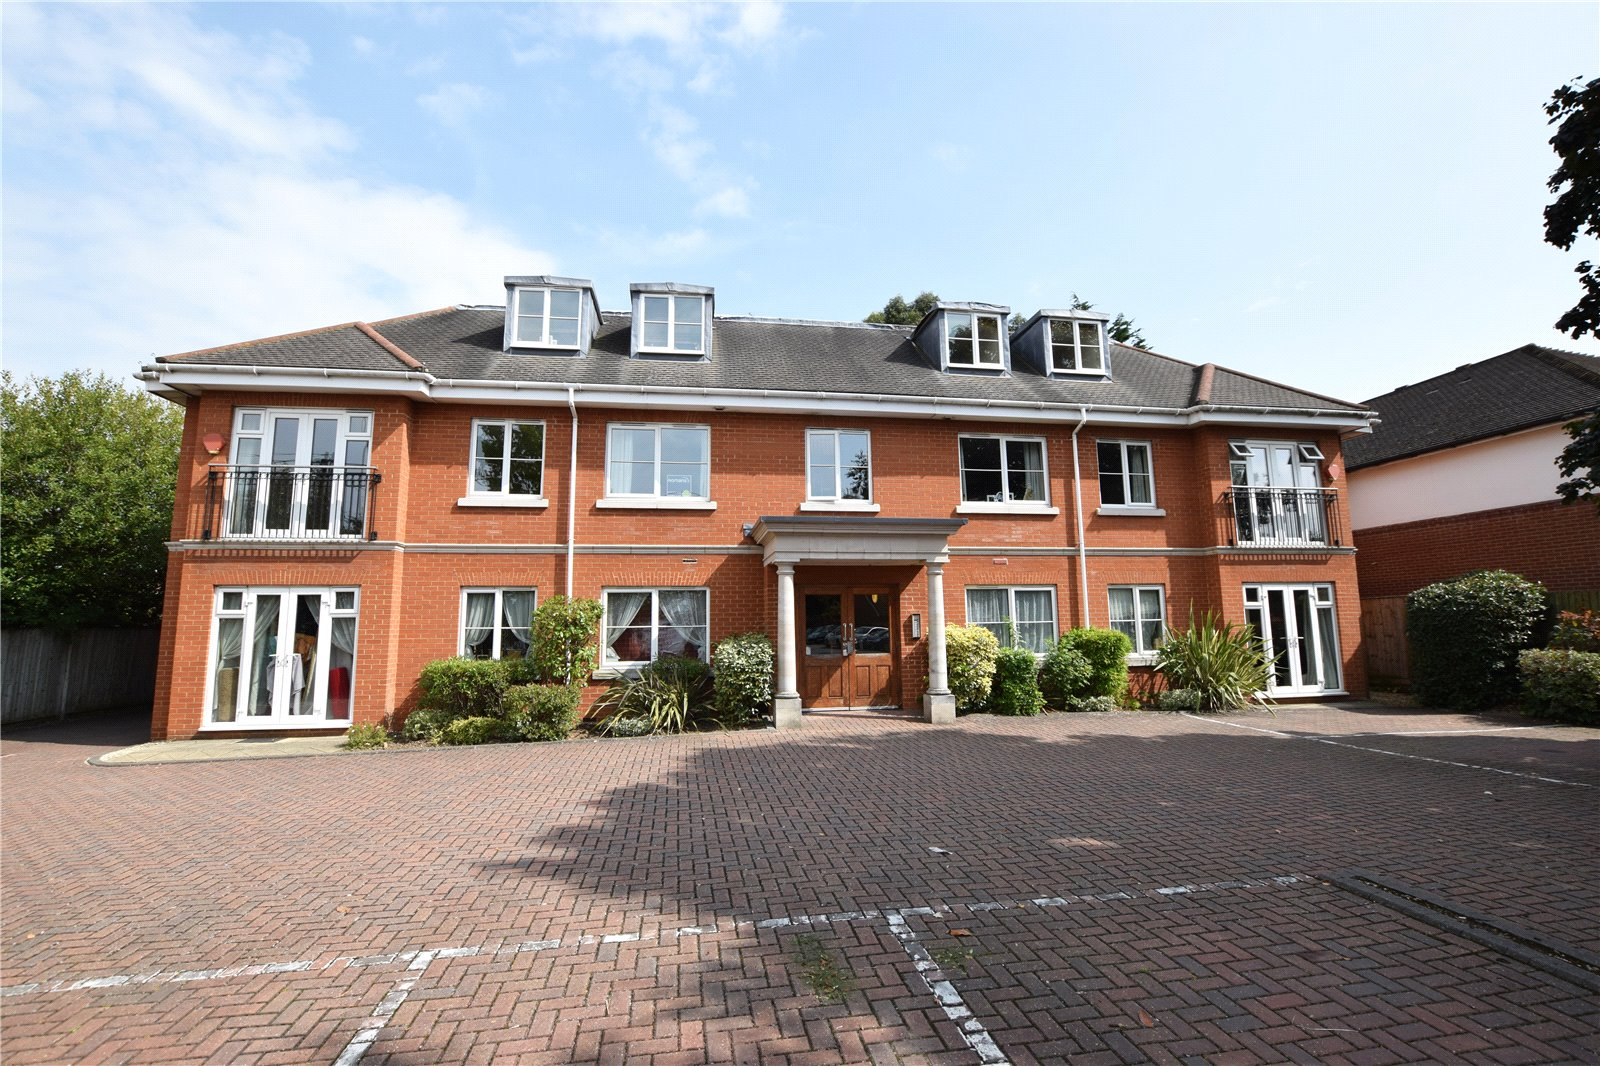 2 Bedrooms Apartment Flat for sale in Sandford Court, Winnersh, Berkshire, RG41